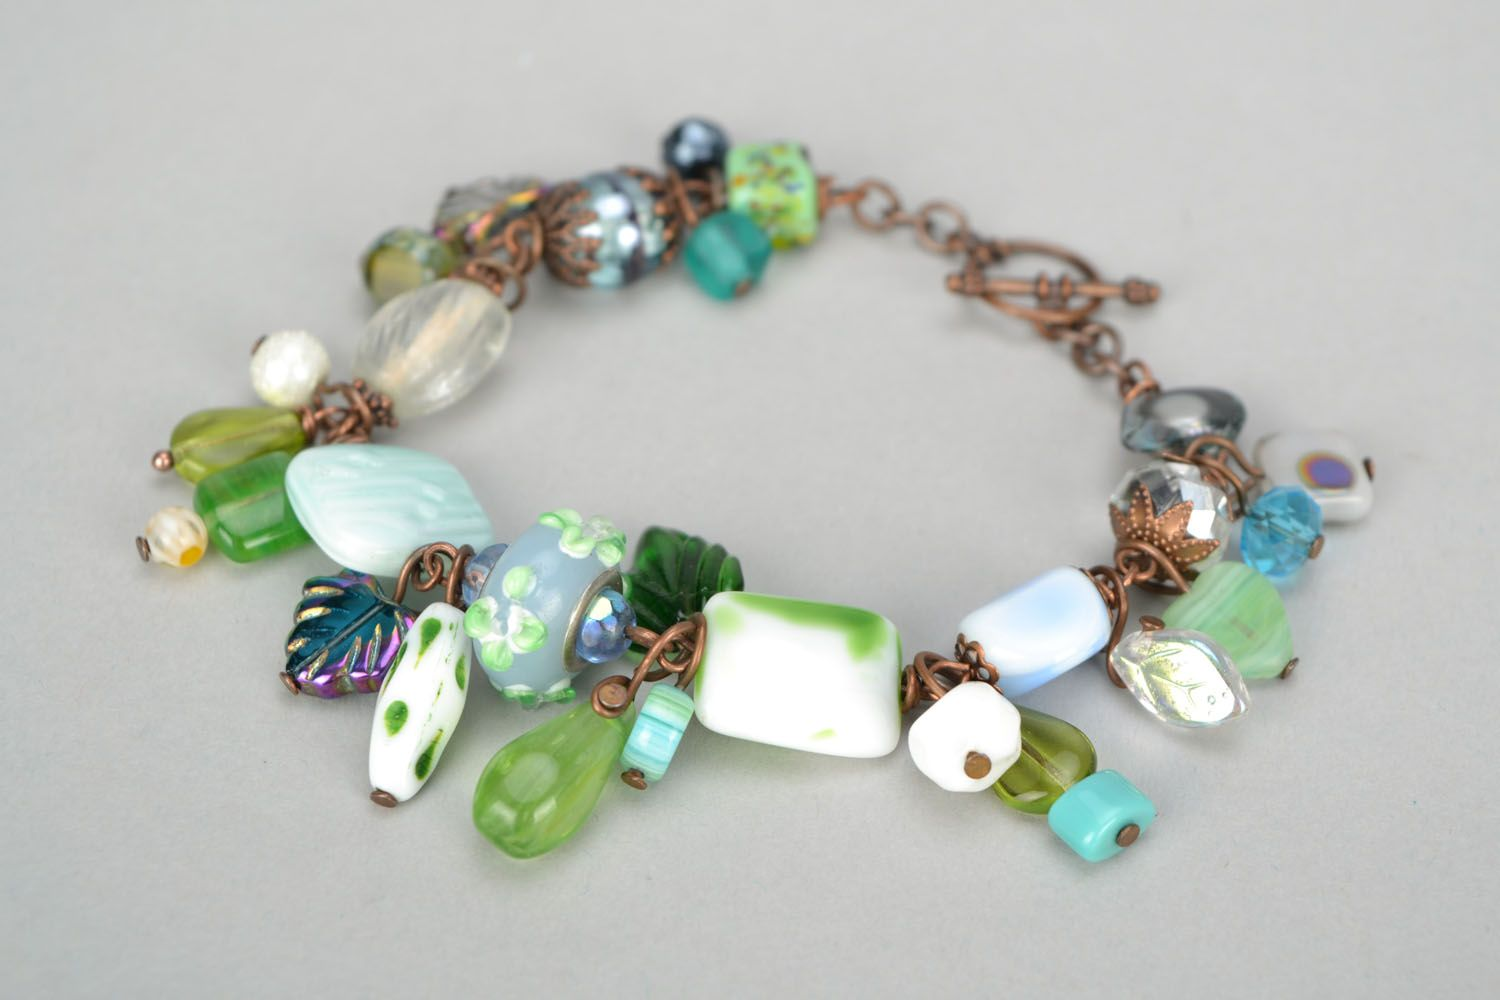 Bracelet with charms photo 1